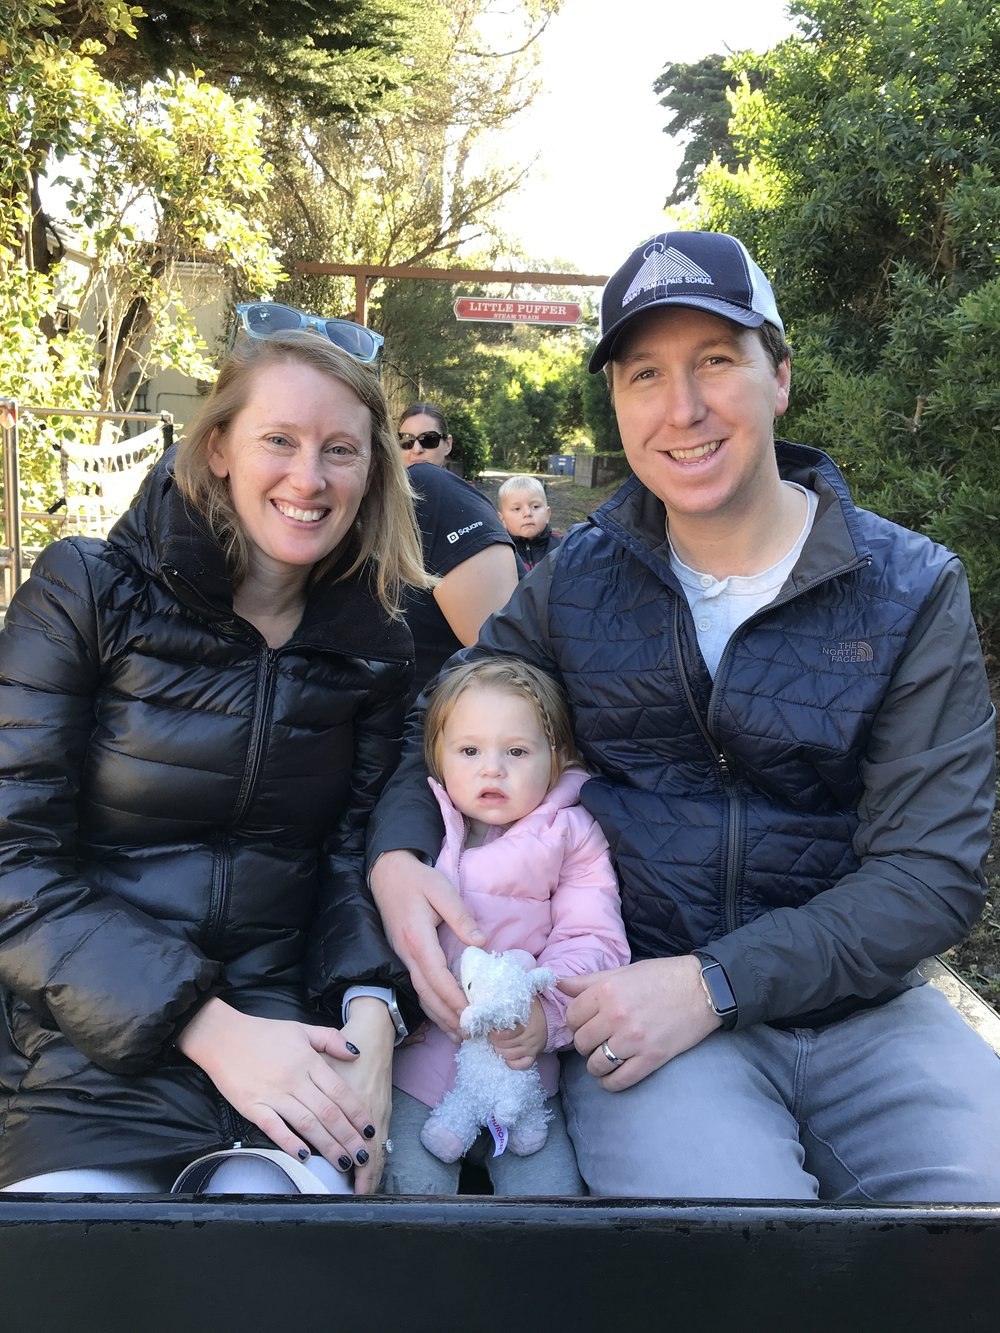 Kindergarten teacher, Julia, with her family representing MTS at the San Francisco Zoo.